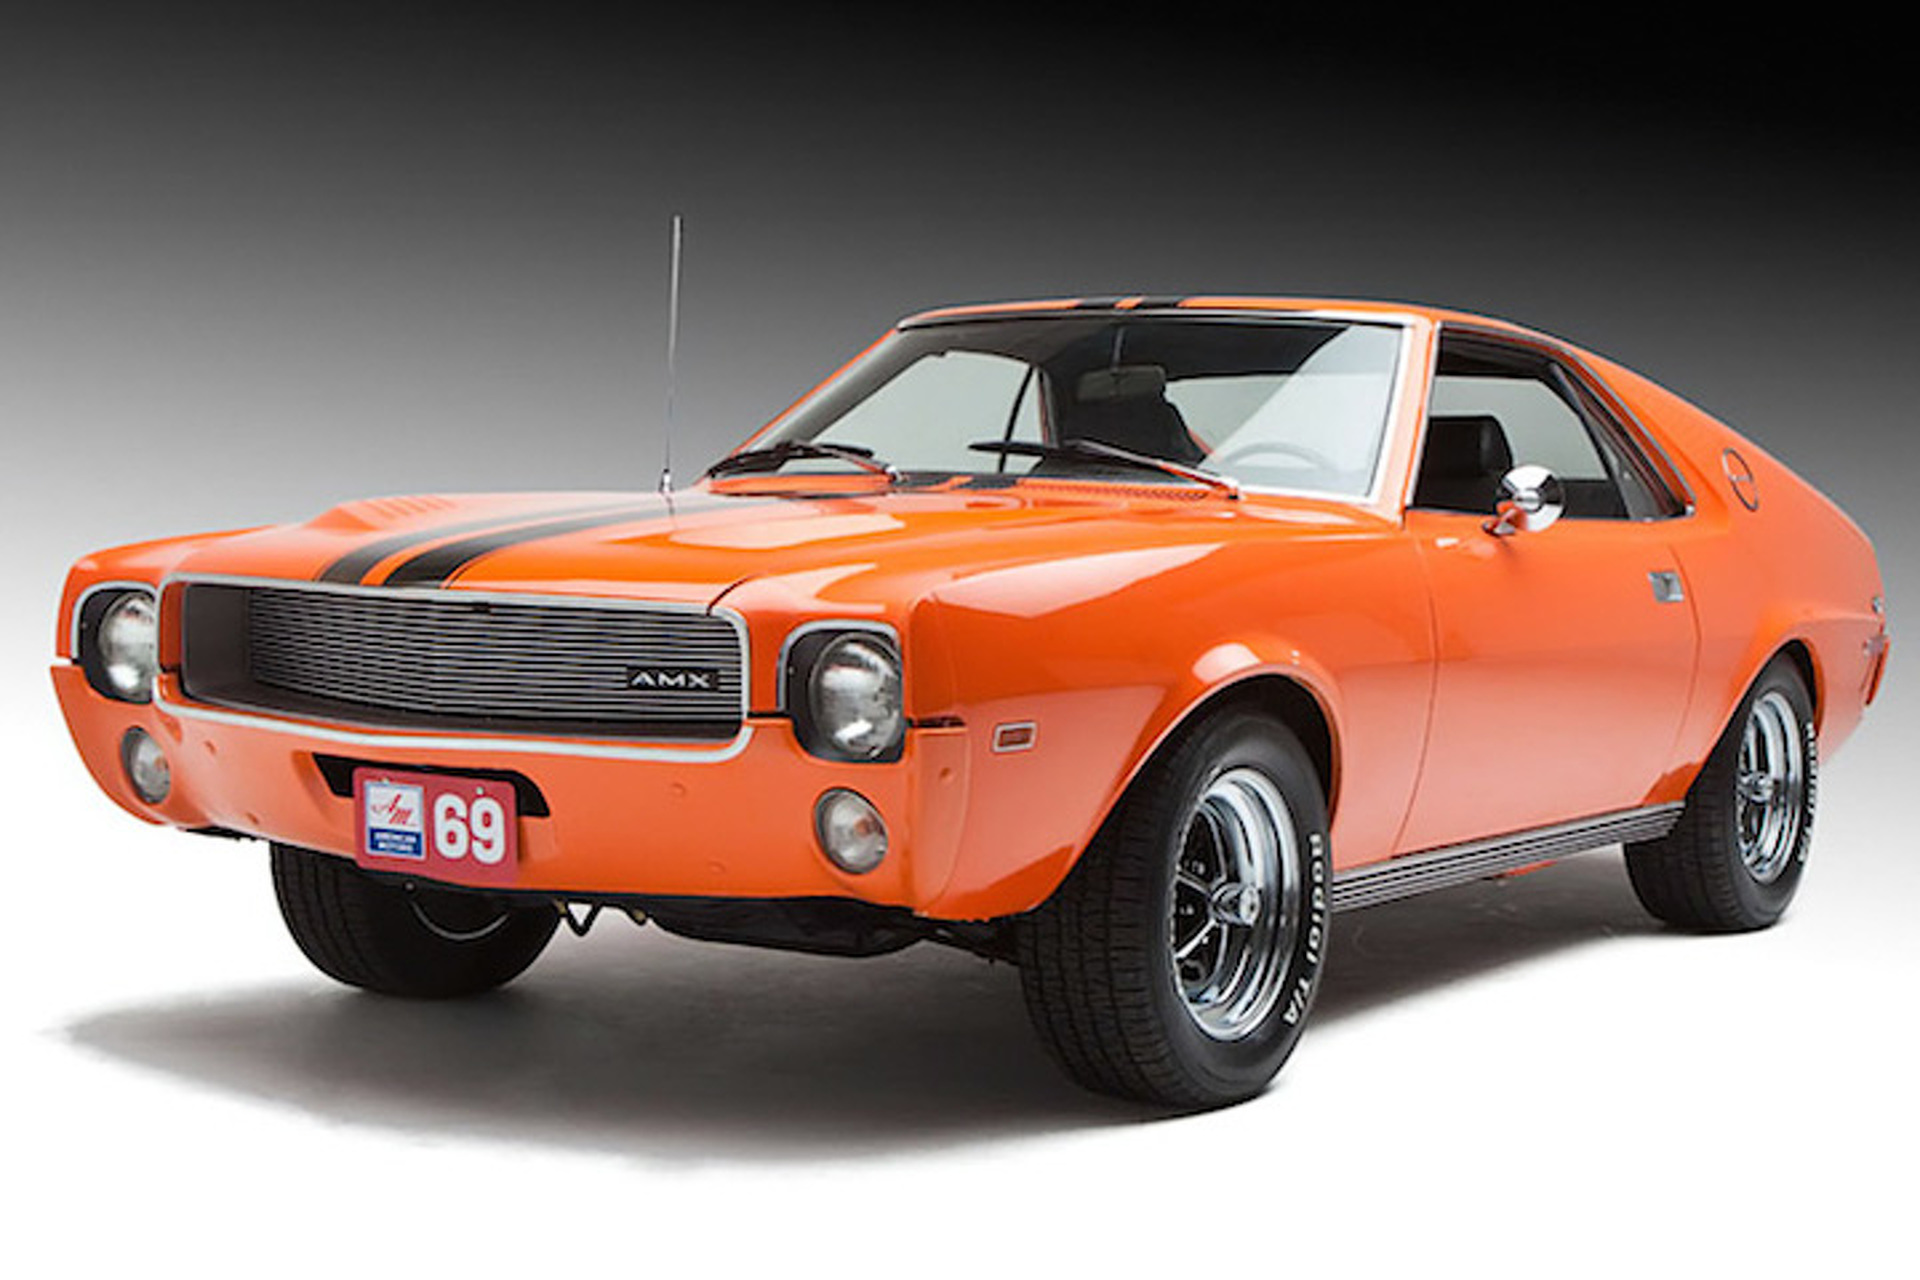 Amc amx the first true sports car of the 1960s